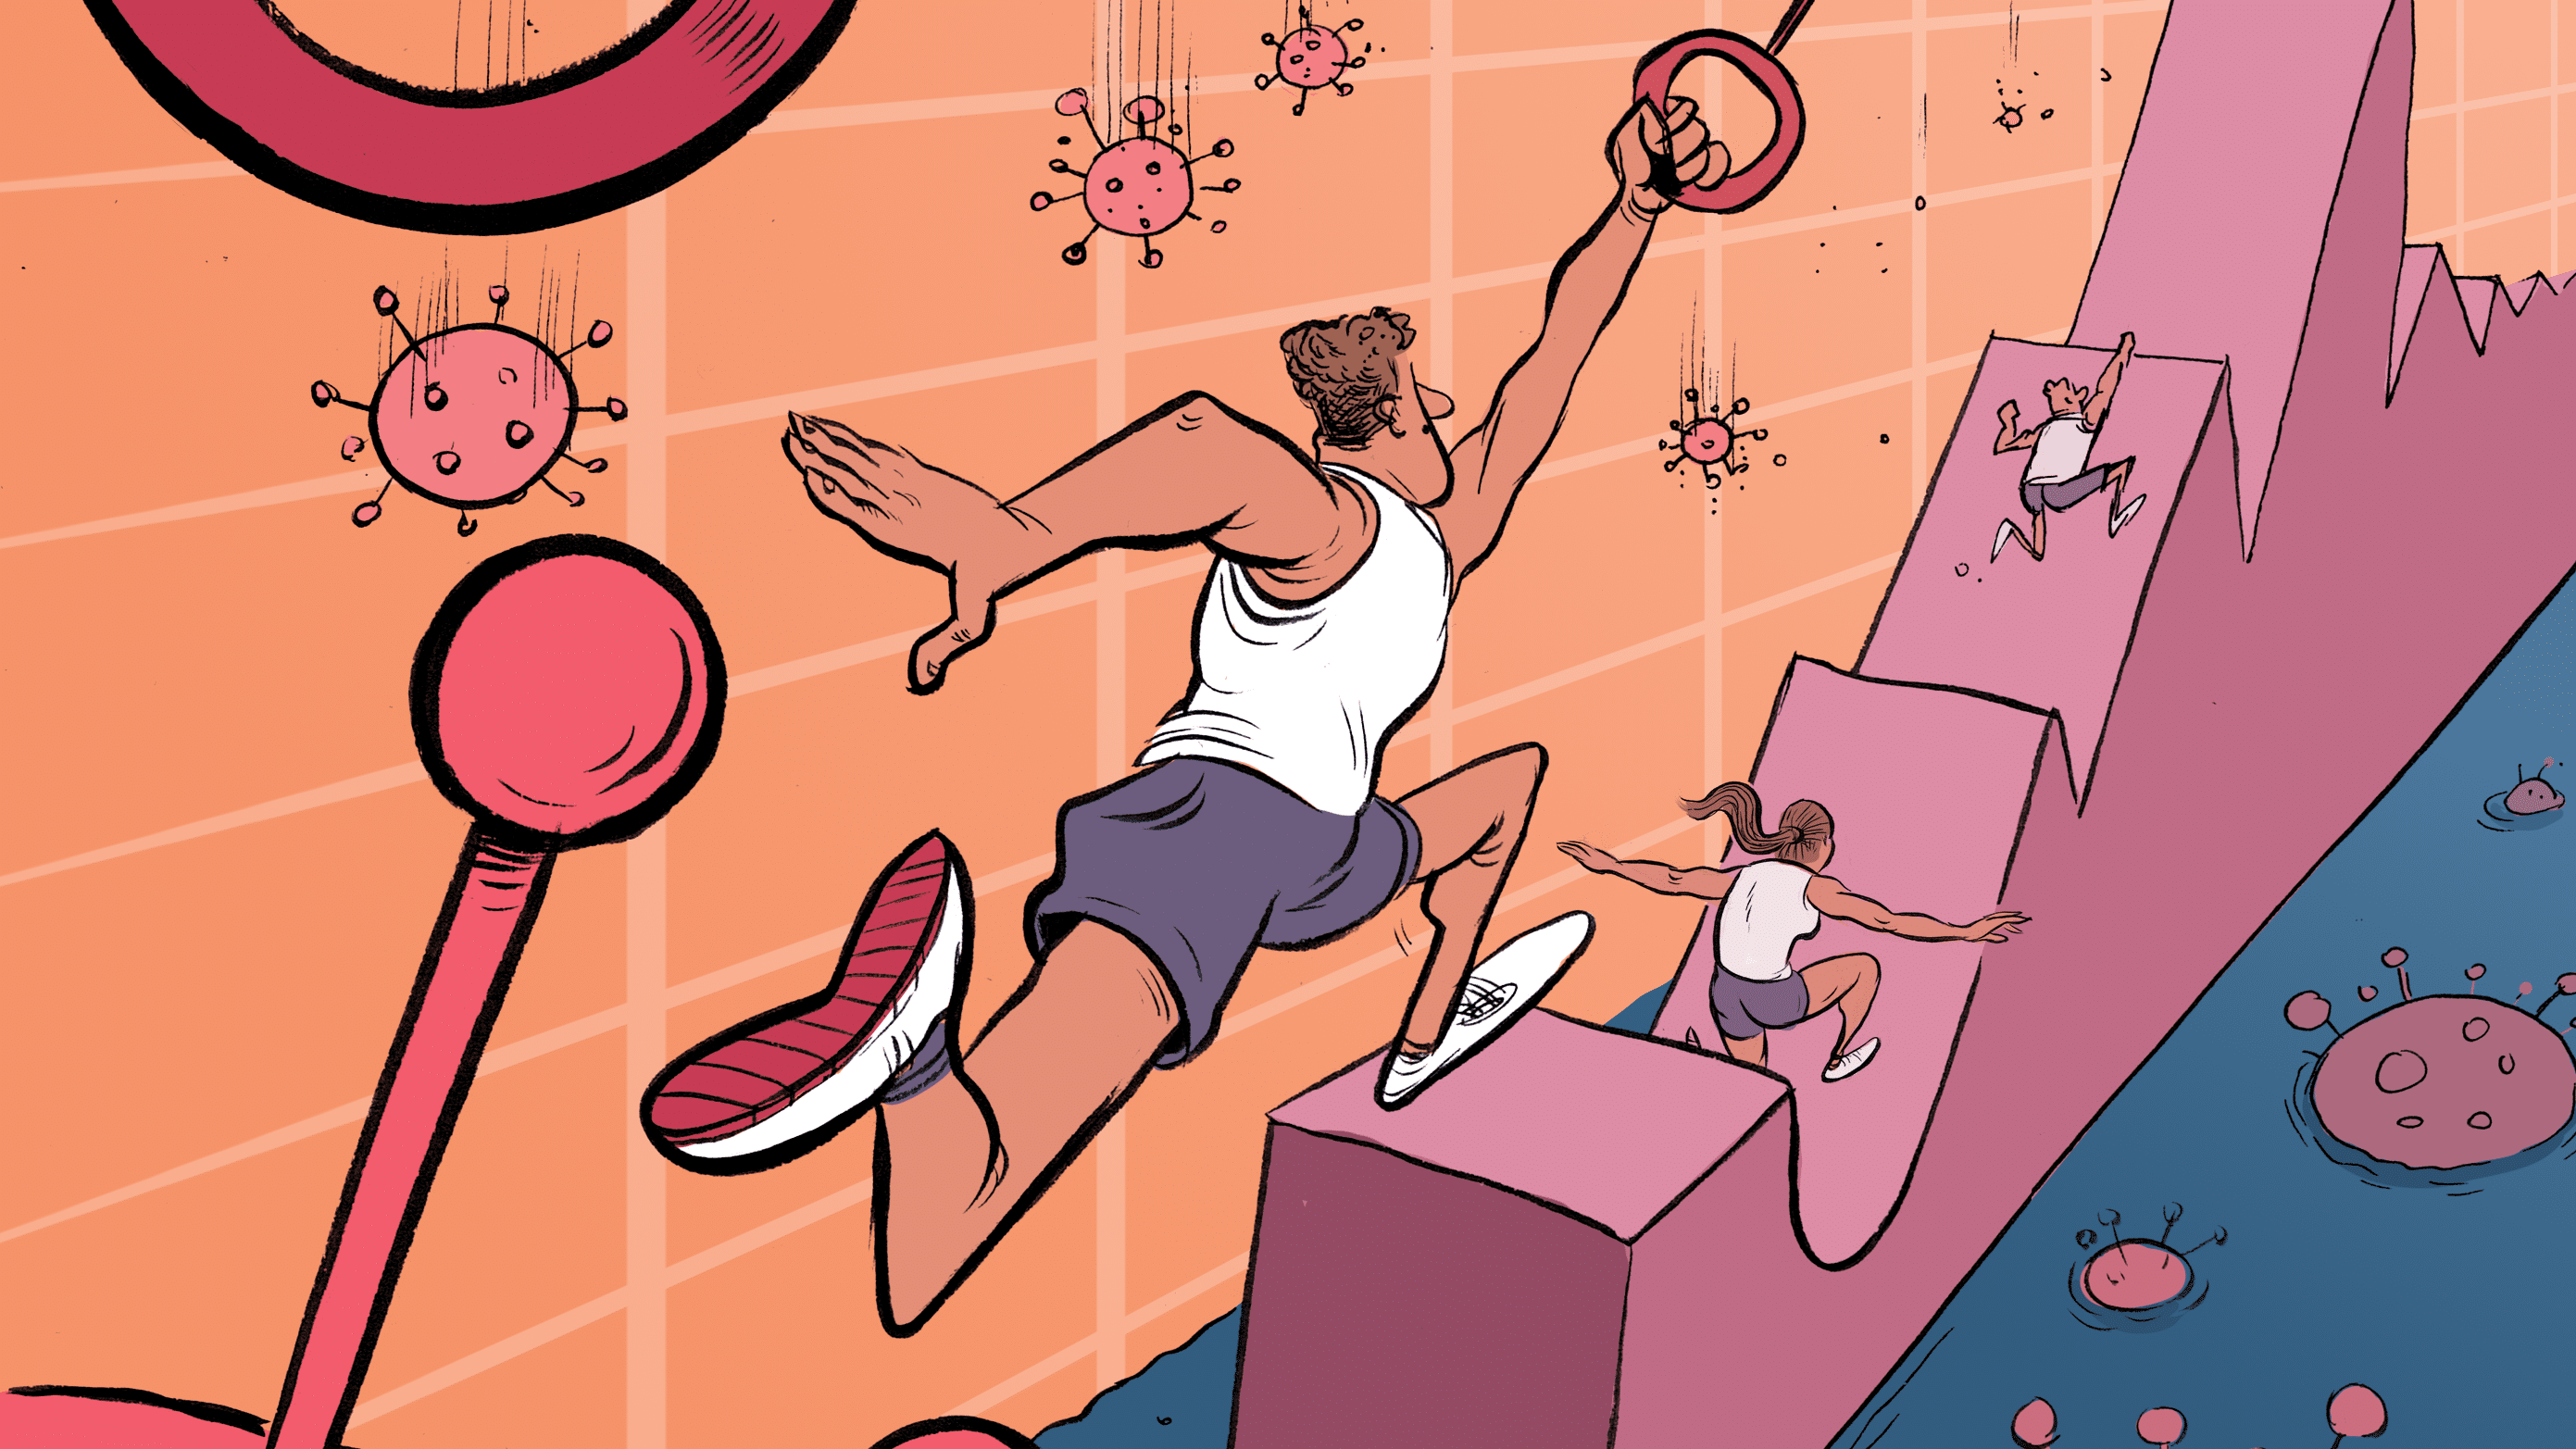 illustration of millennials in an obstacle course